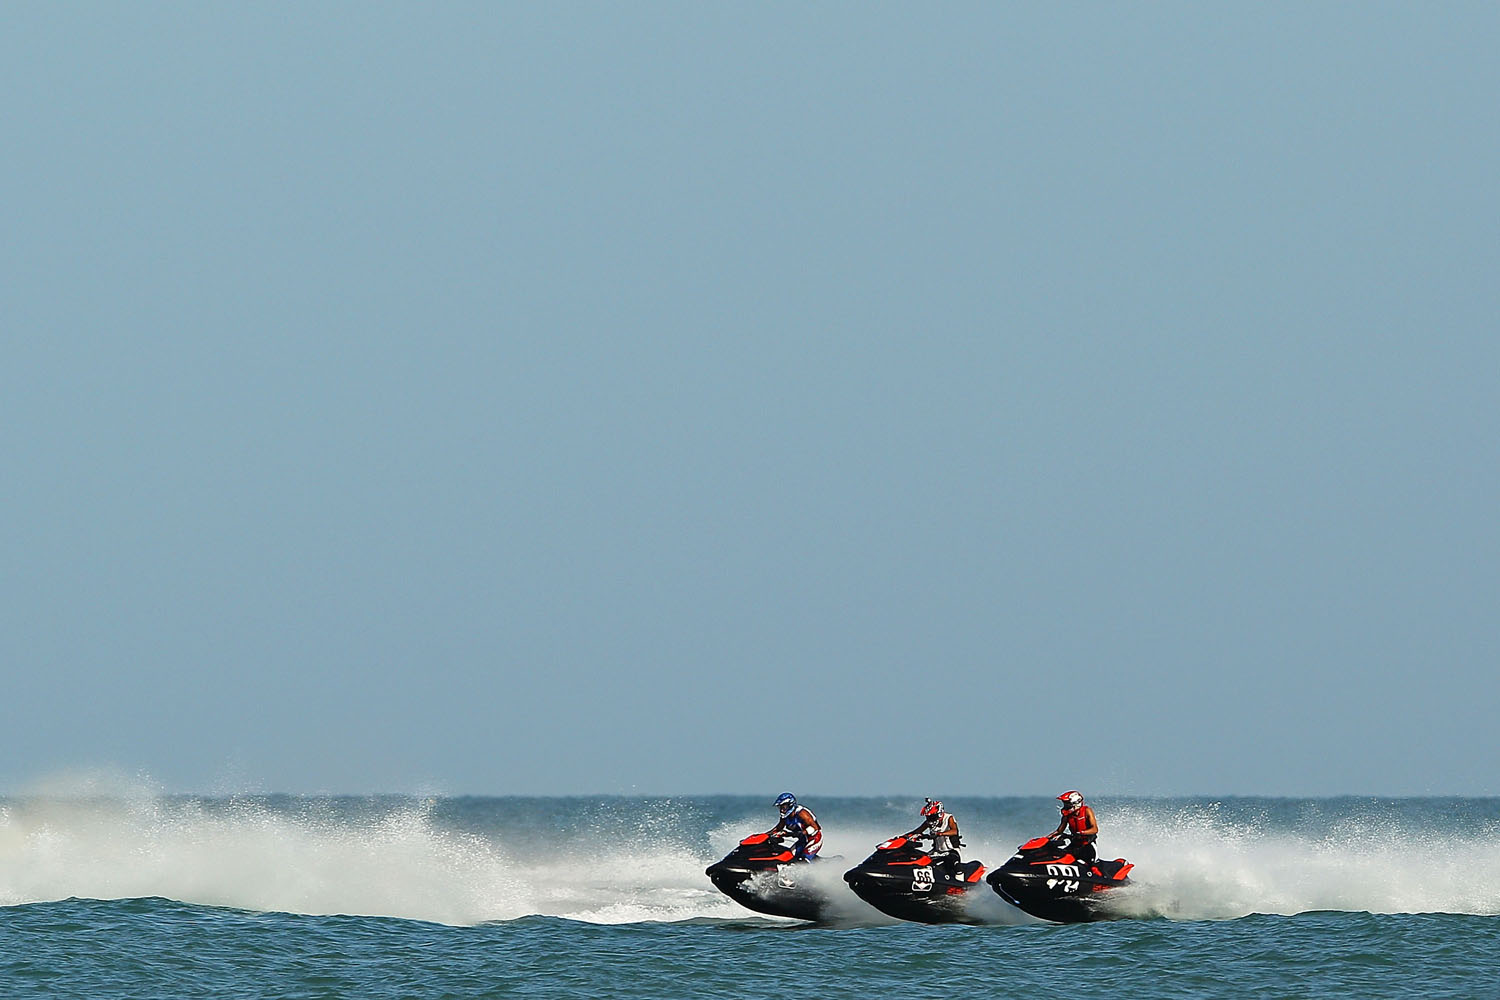 A general view of the race start in the Jetski final at Al-Musannah Sports City during day eight of the 2nd Asian Beach Games Muscat in Muscat, Oman.